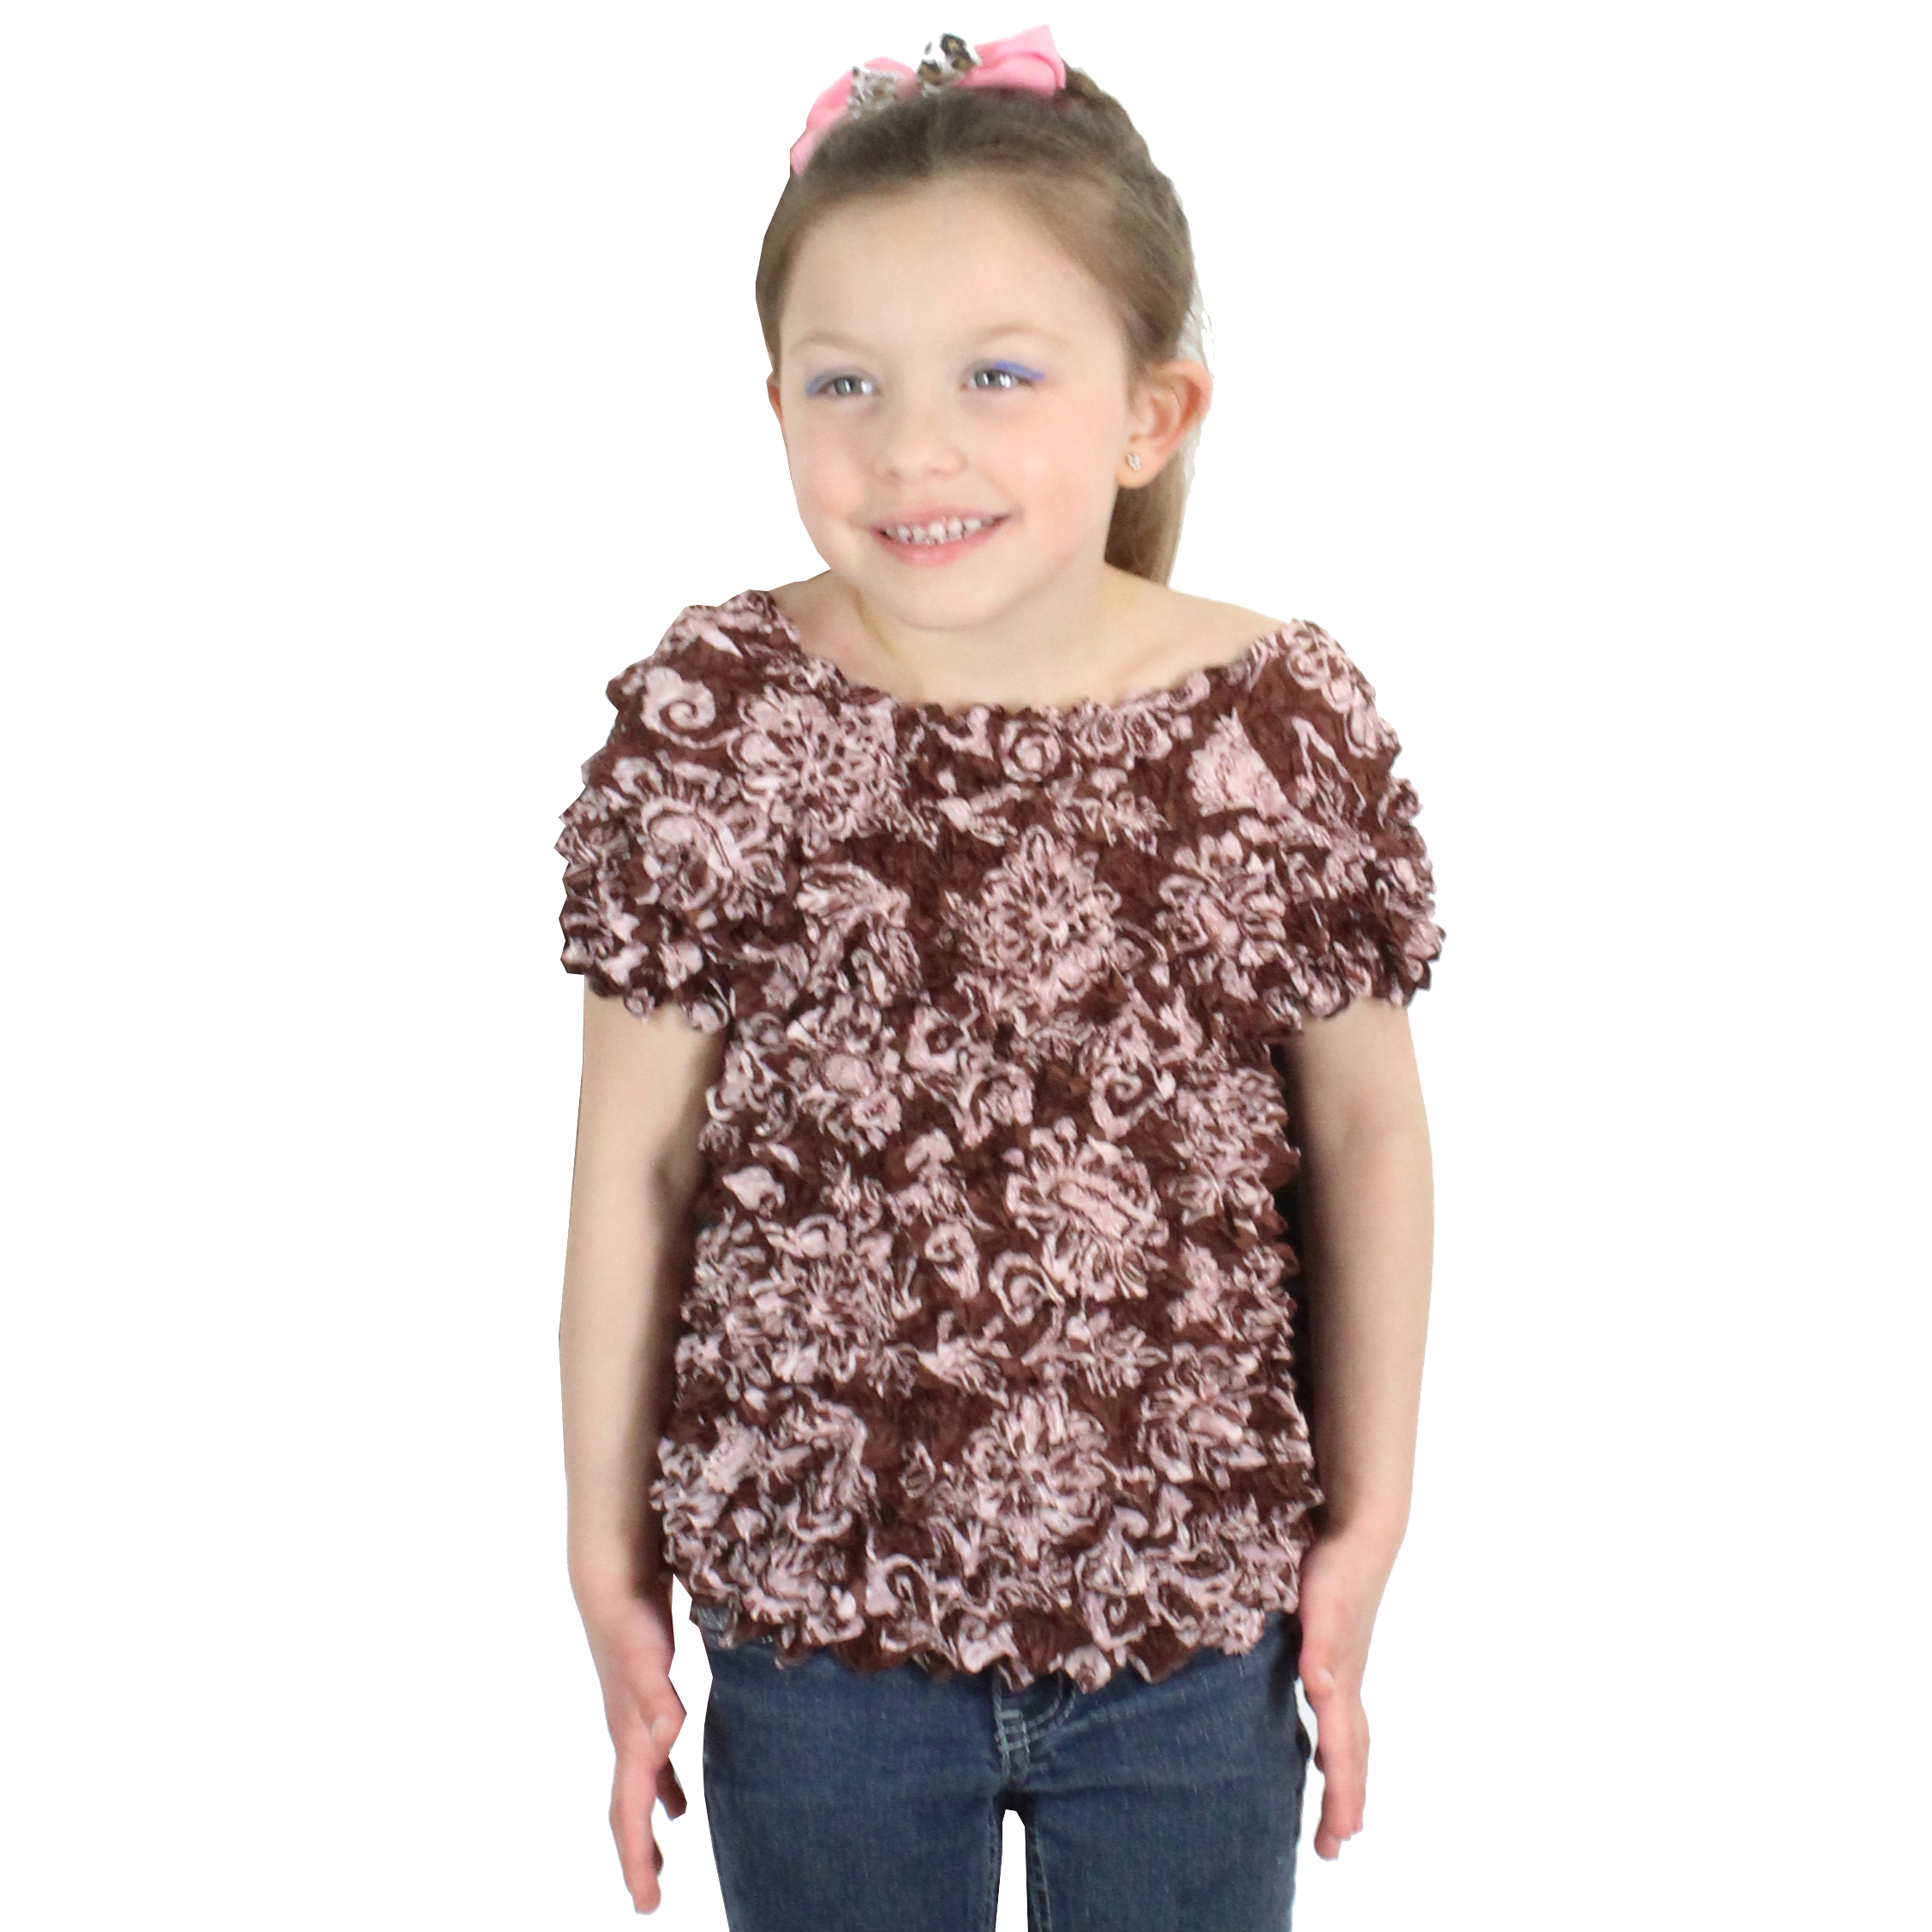 Wholesale Silky Touch Popcorn - Kids Size  Short Sleeve Floral Brown - Toddler - Tween